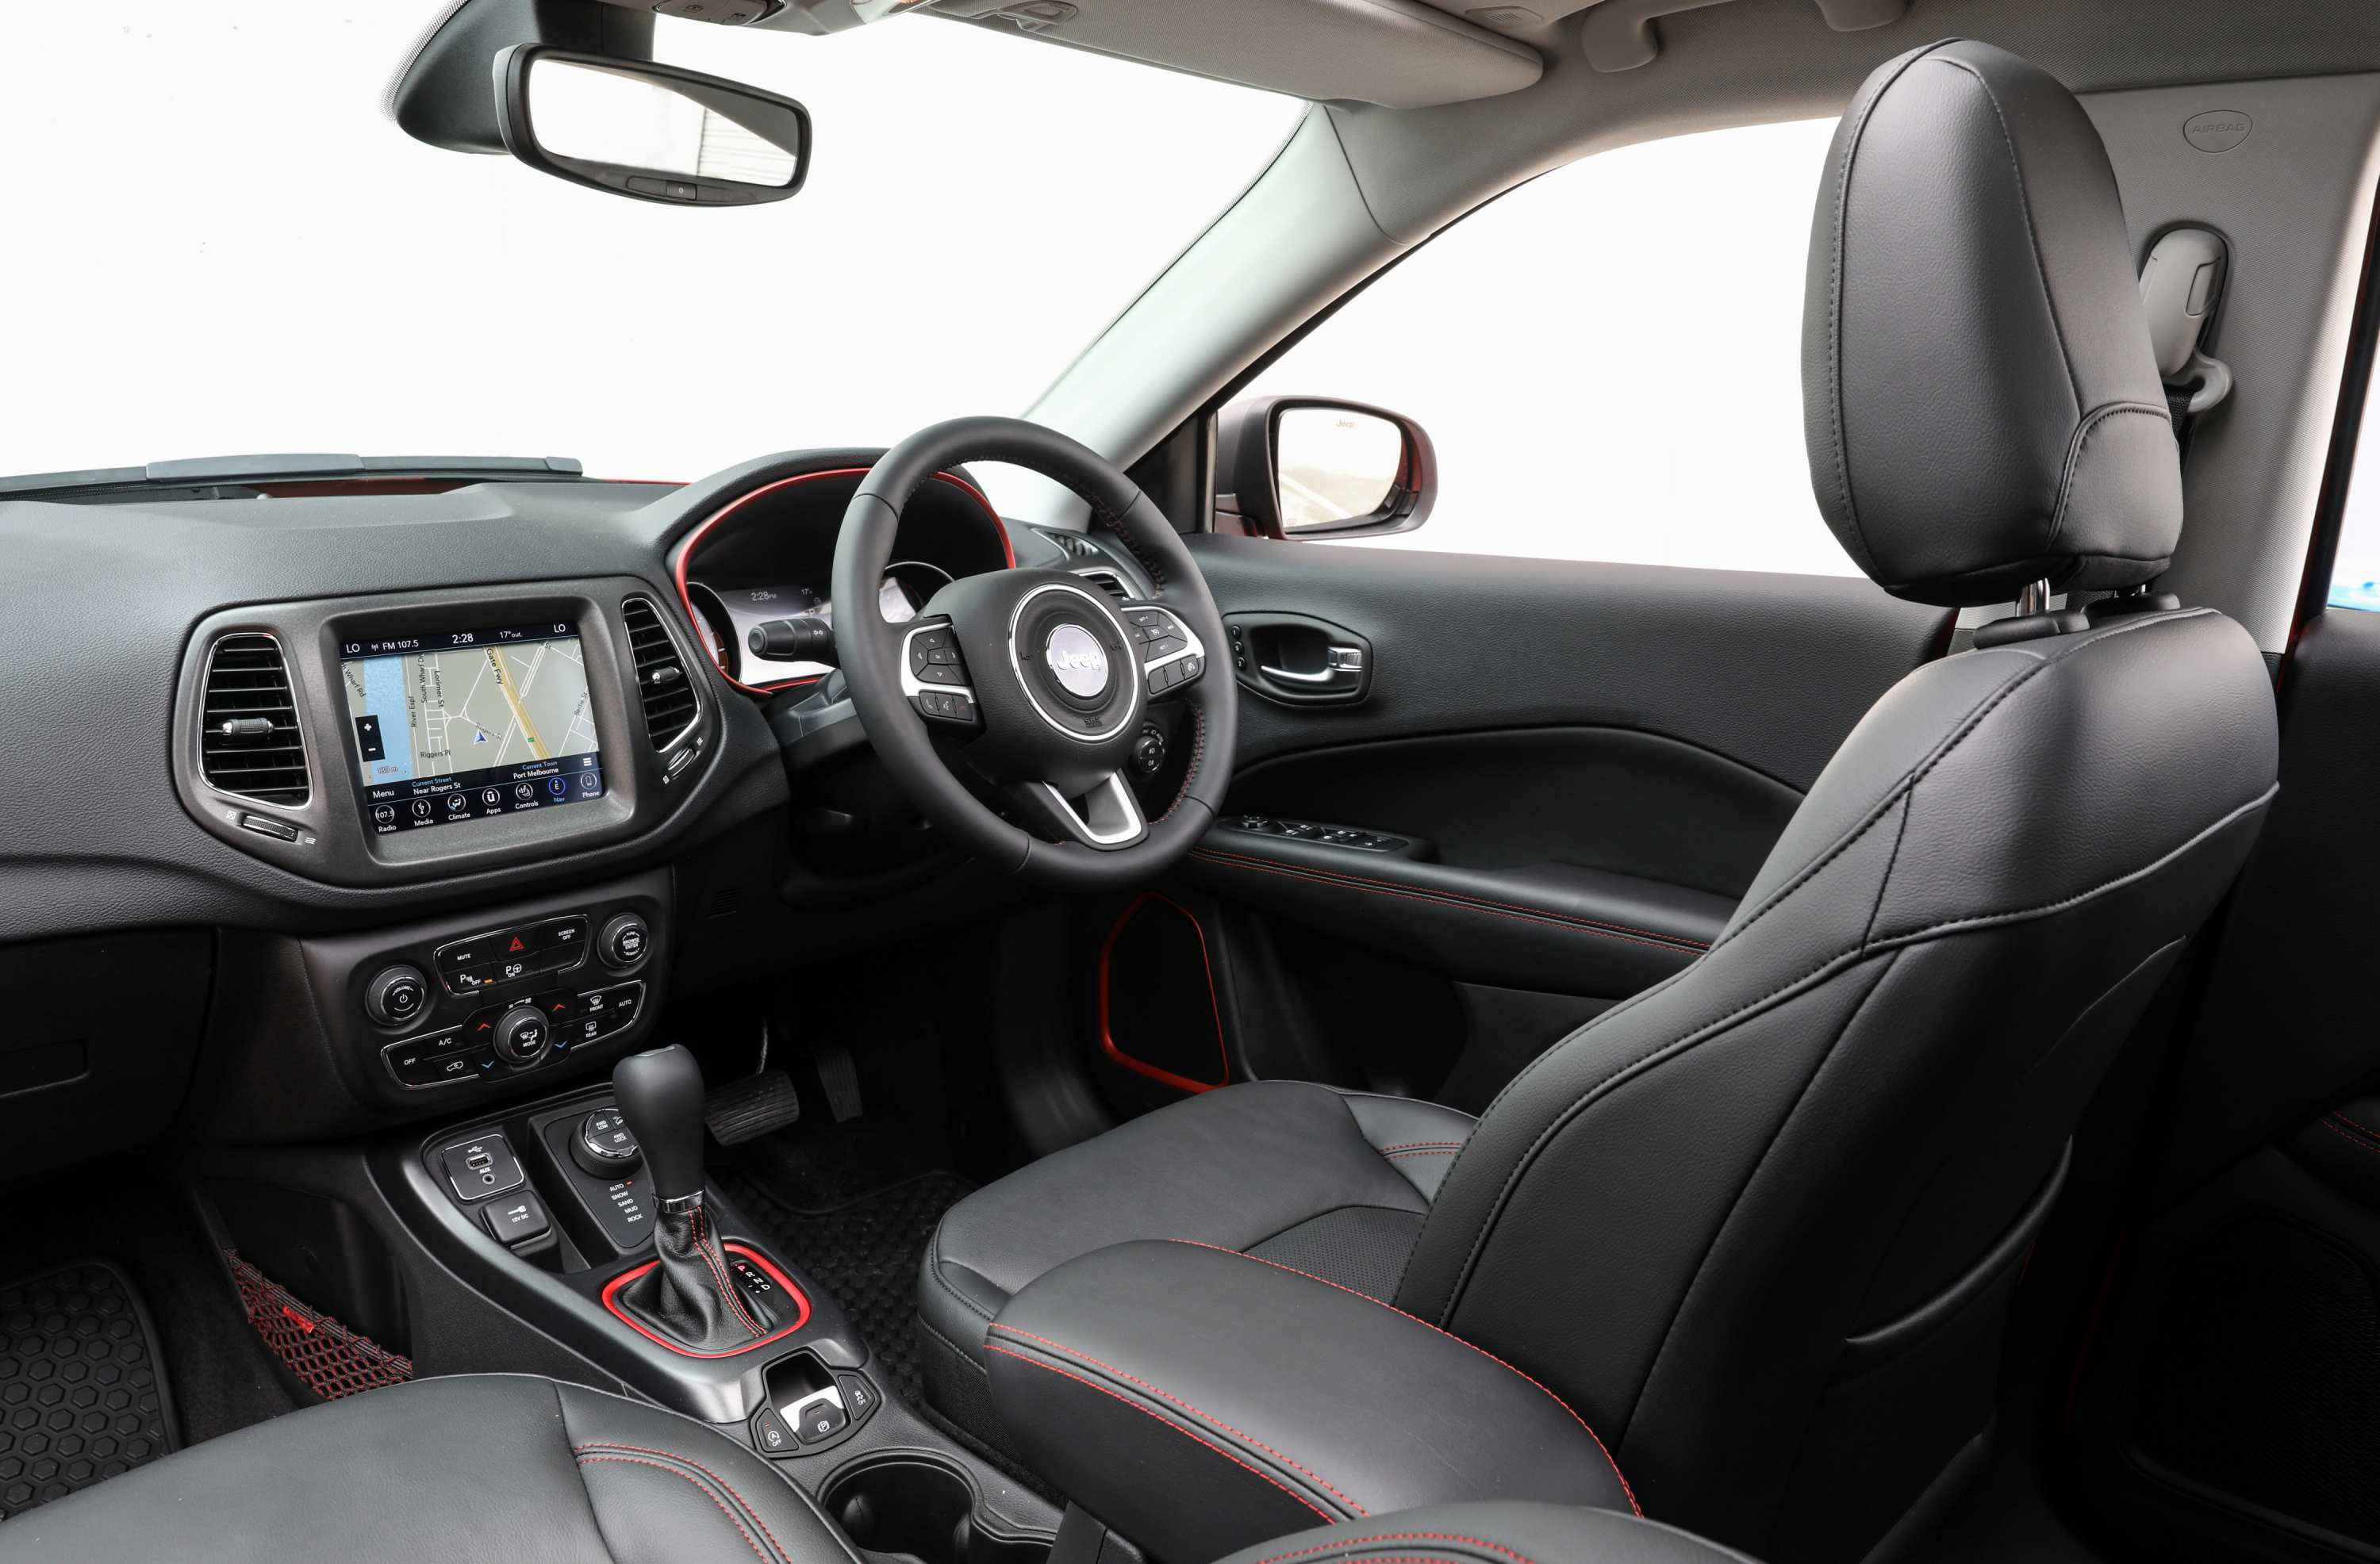 2020 Jeep Compass Trailhawk interior